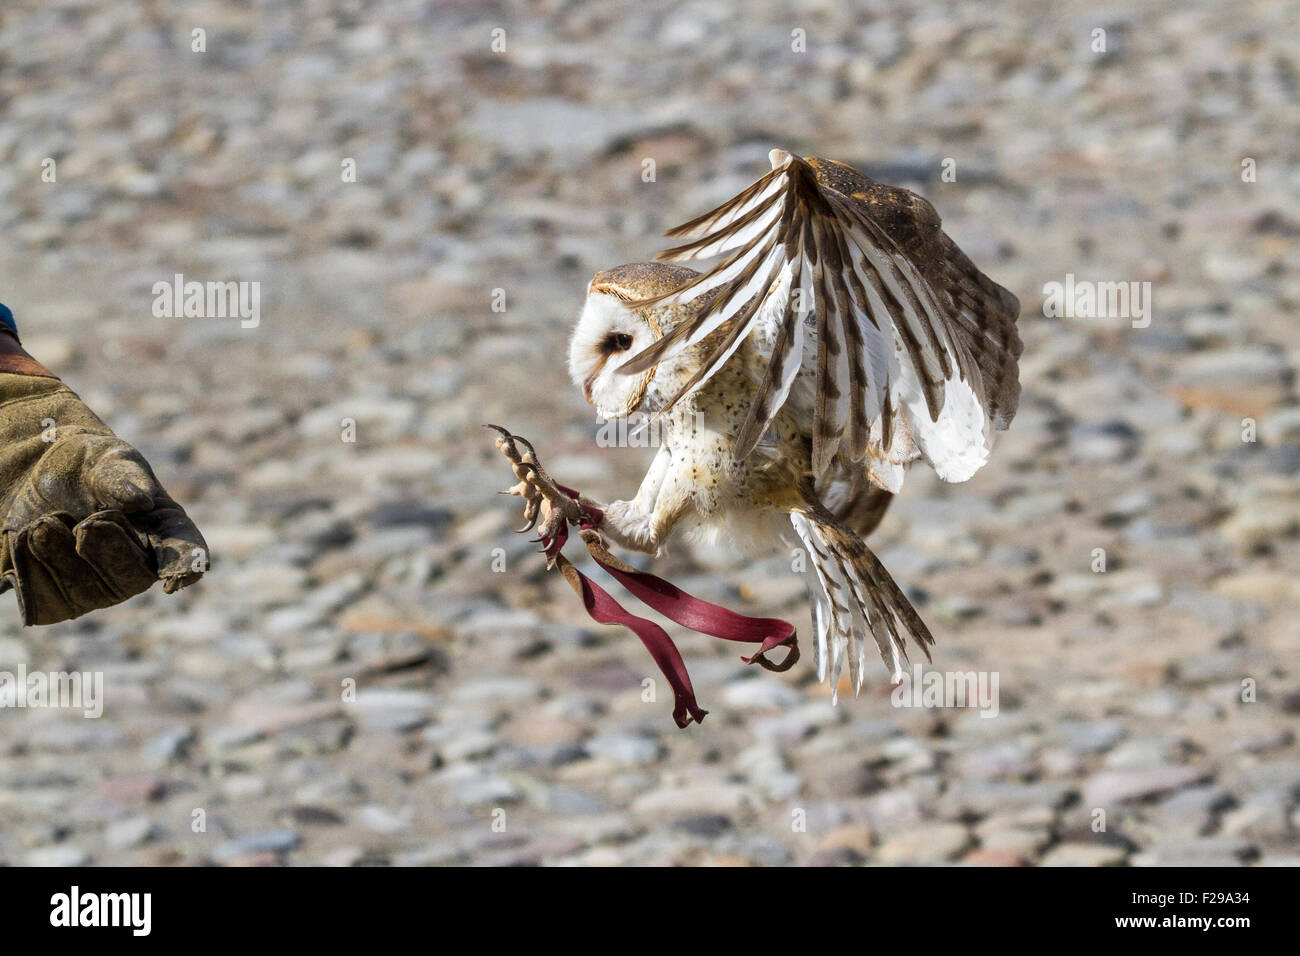 A Barn Owl arrives into the falconers glove during a flight demonstration - Stock Image